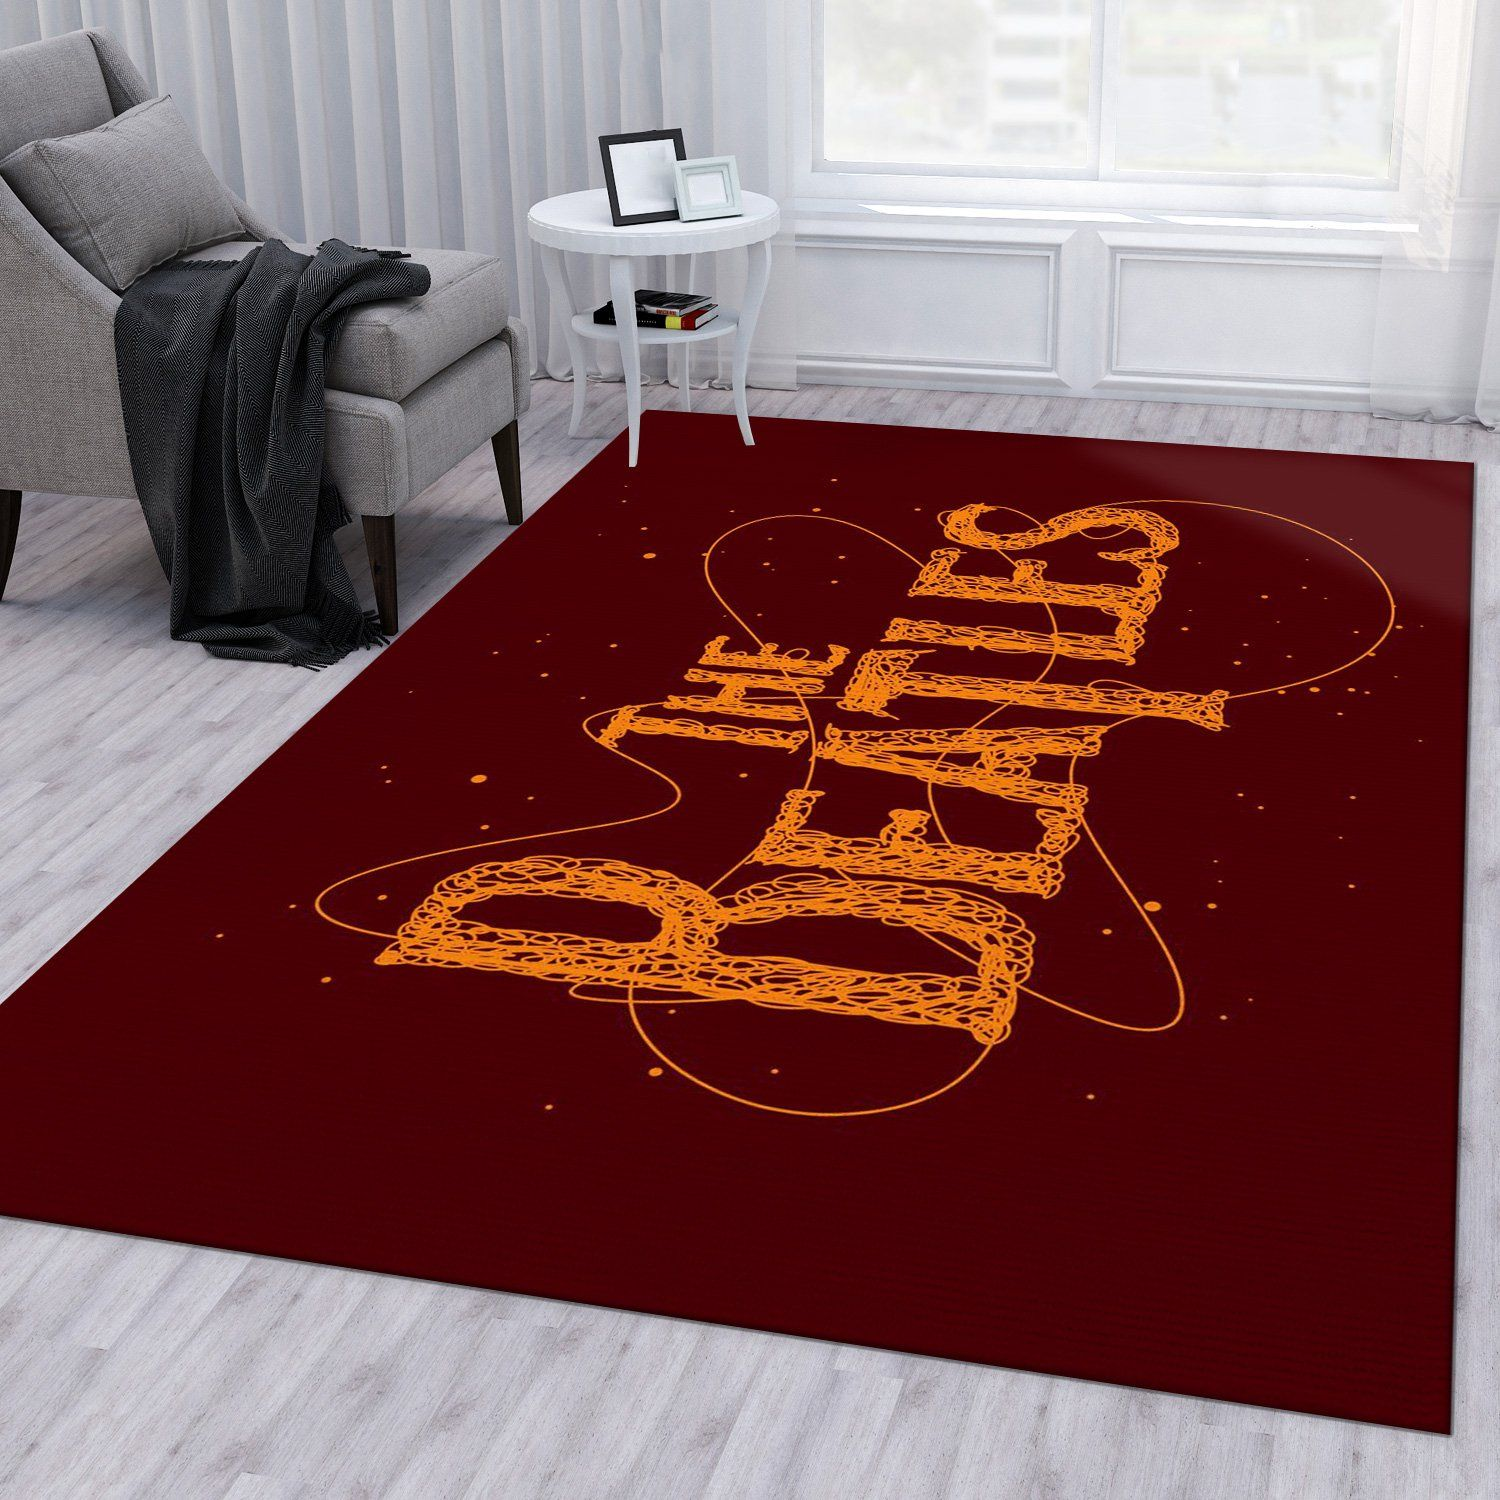 The Beatles Liverpool Rug